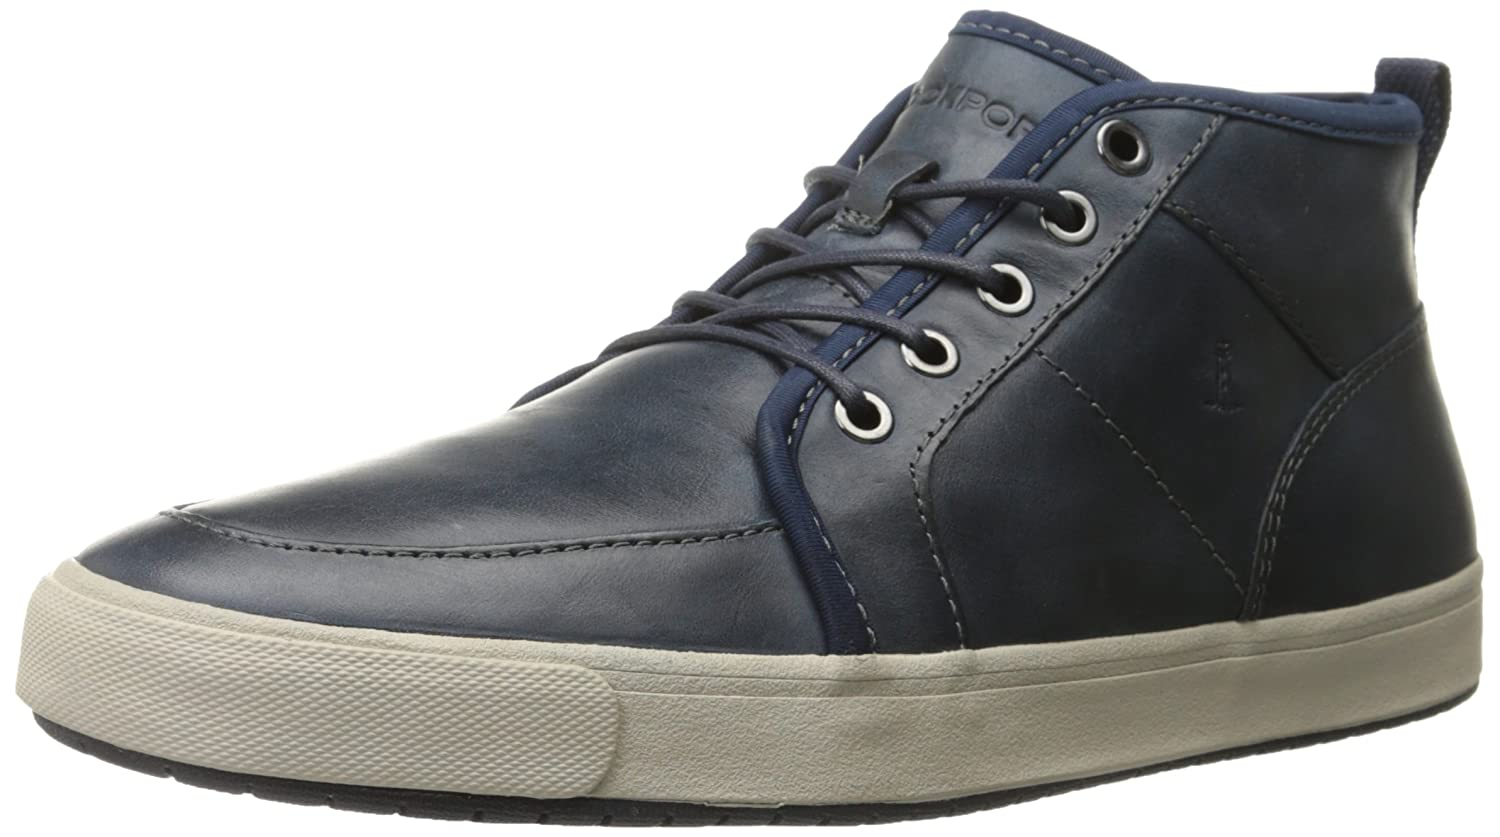 Rockport Men's Path to Greatness Mid Stiefel Navy 8 M (D)